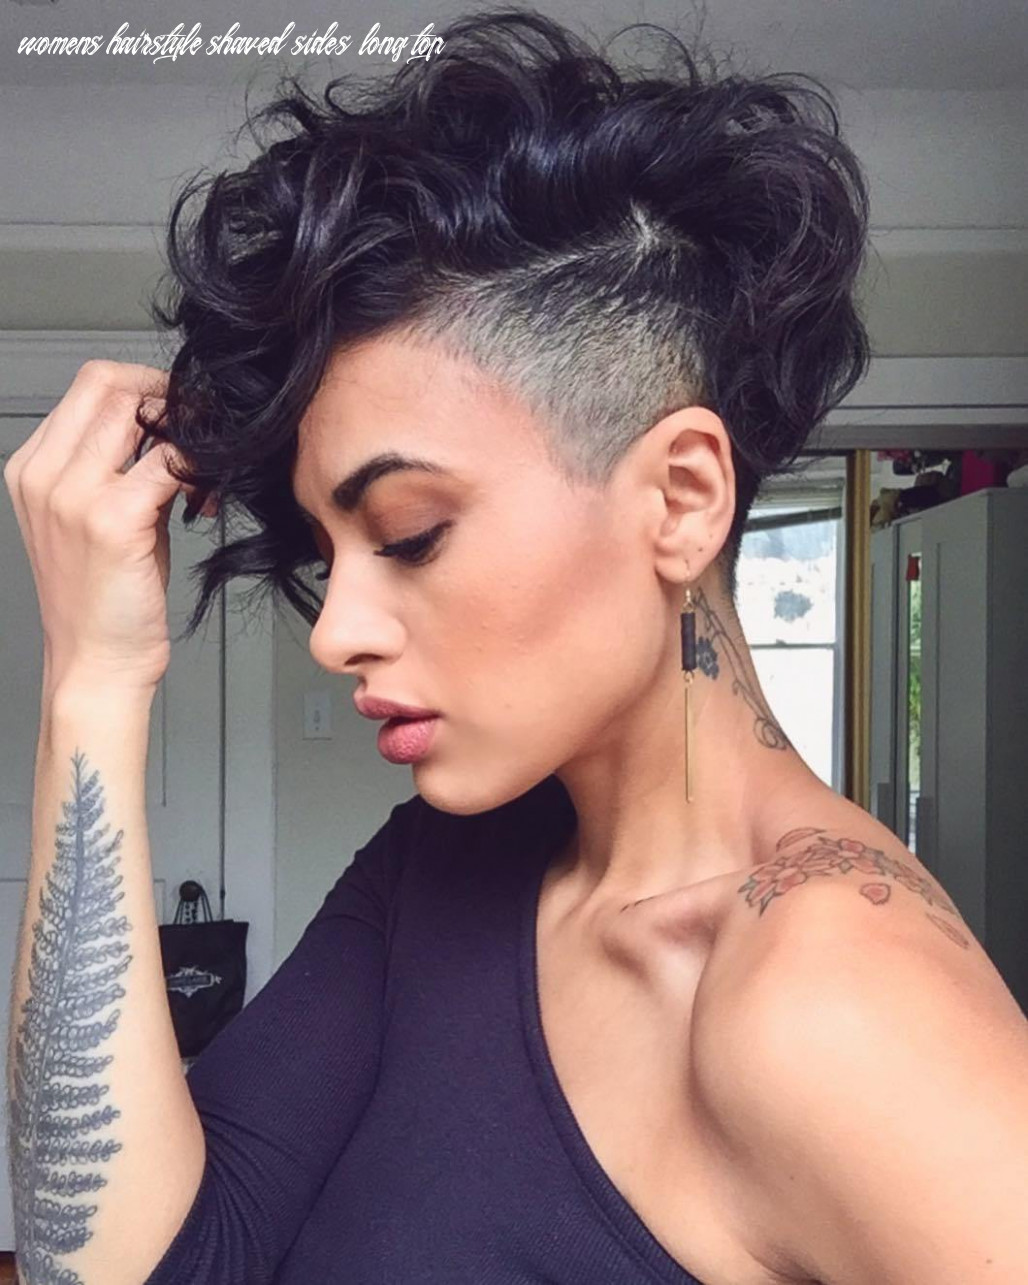 12 bold shaved hairstyles for women | shaved hair designs womens hairstyle shaved sides long top